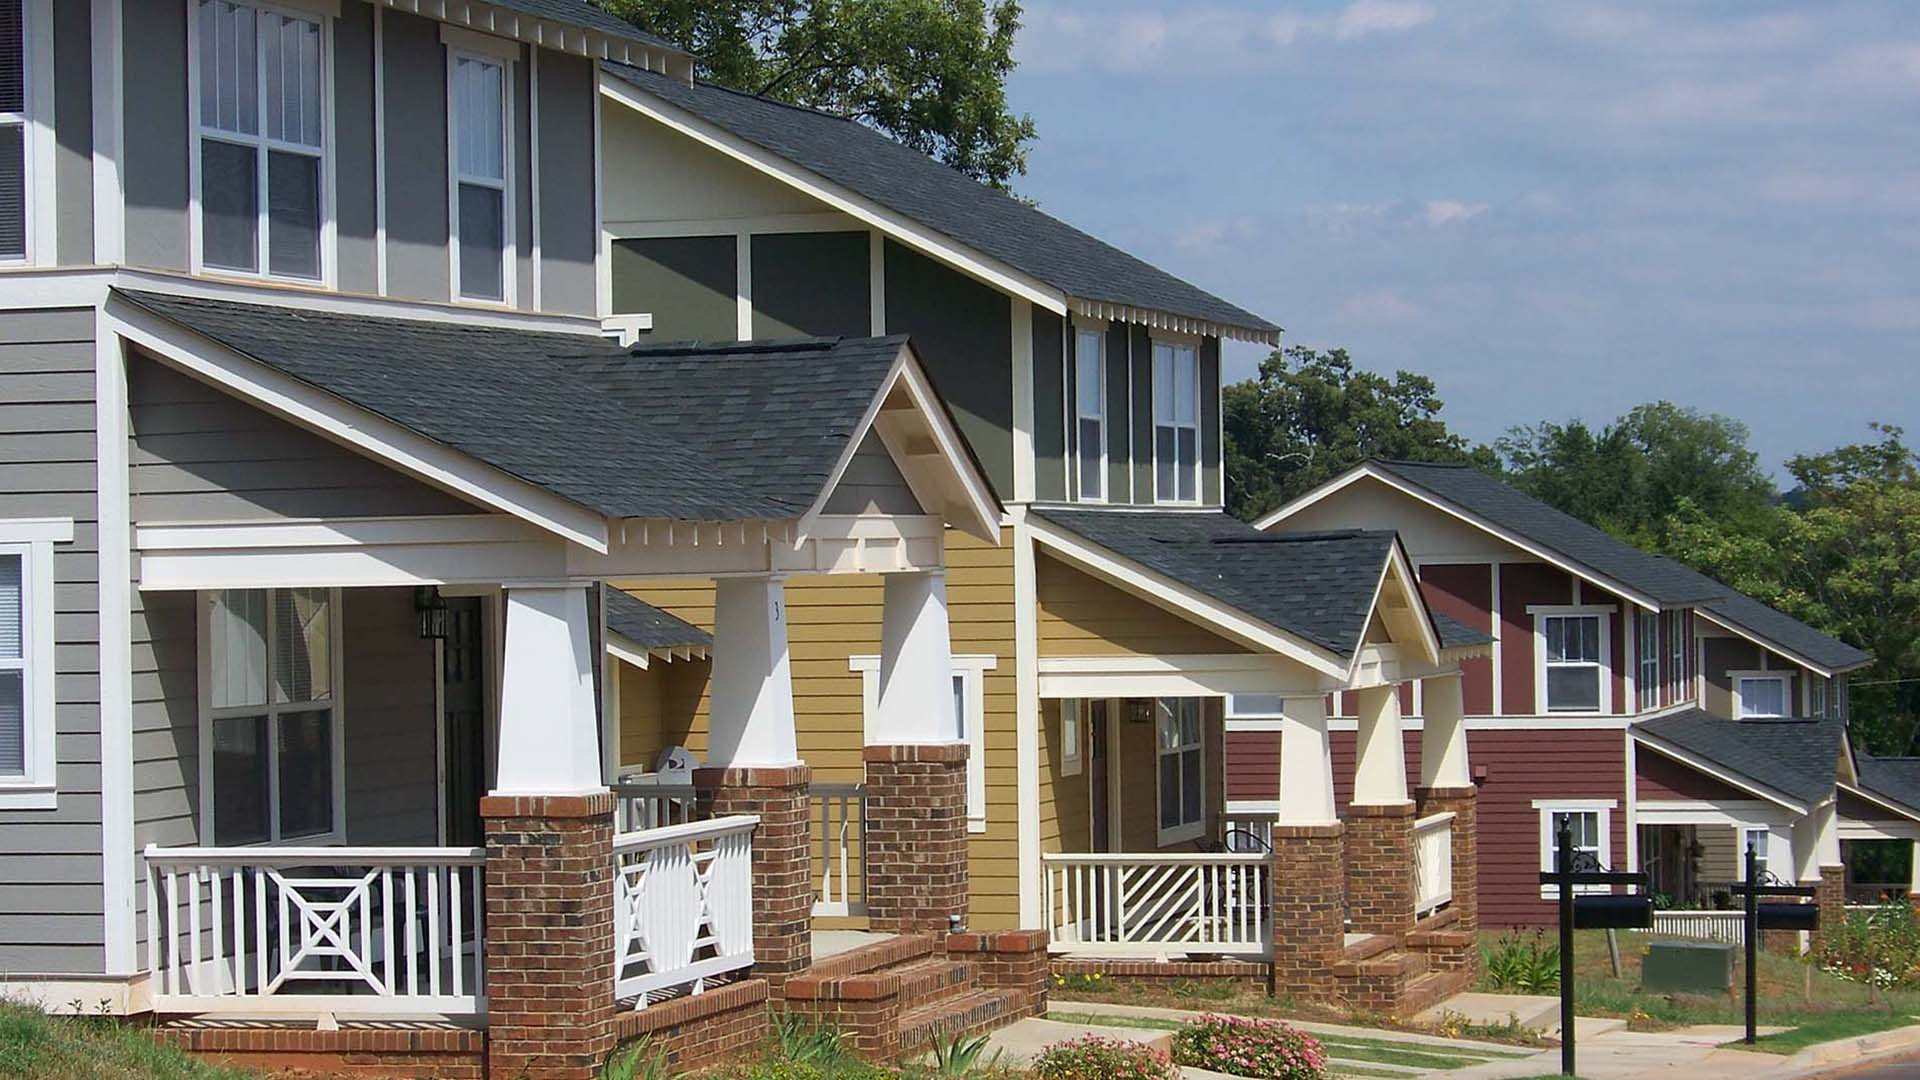 Homes of Hope moves forward with affordable housing